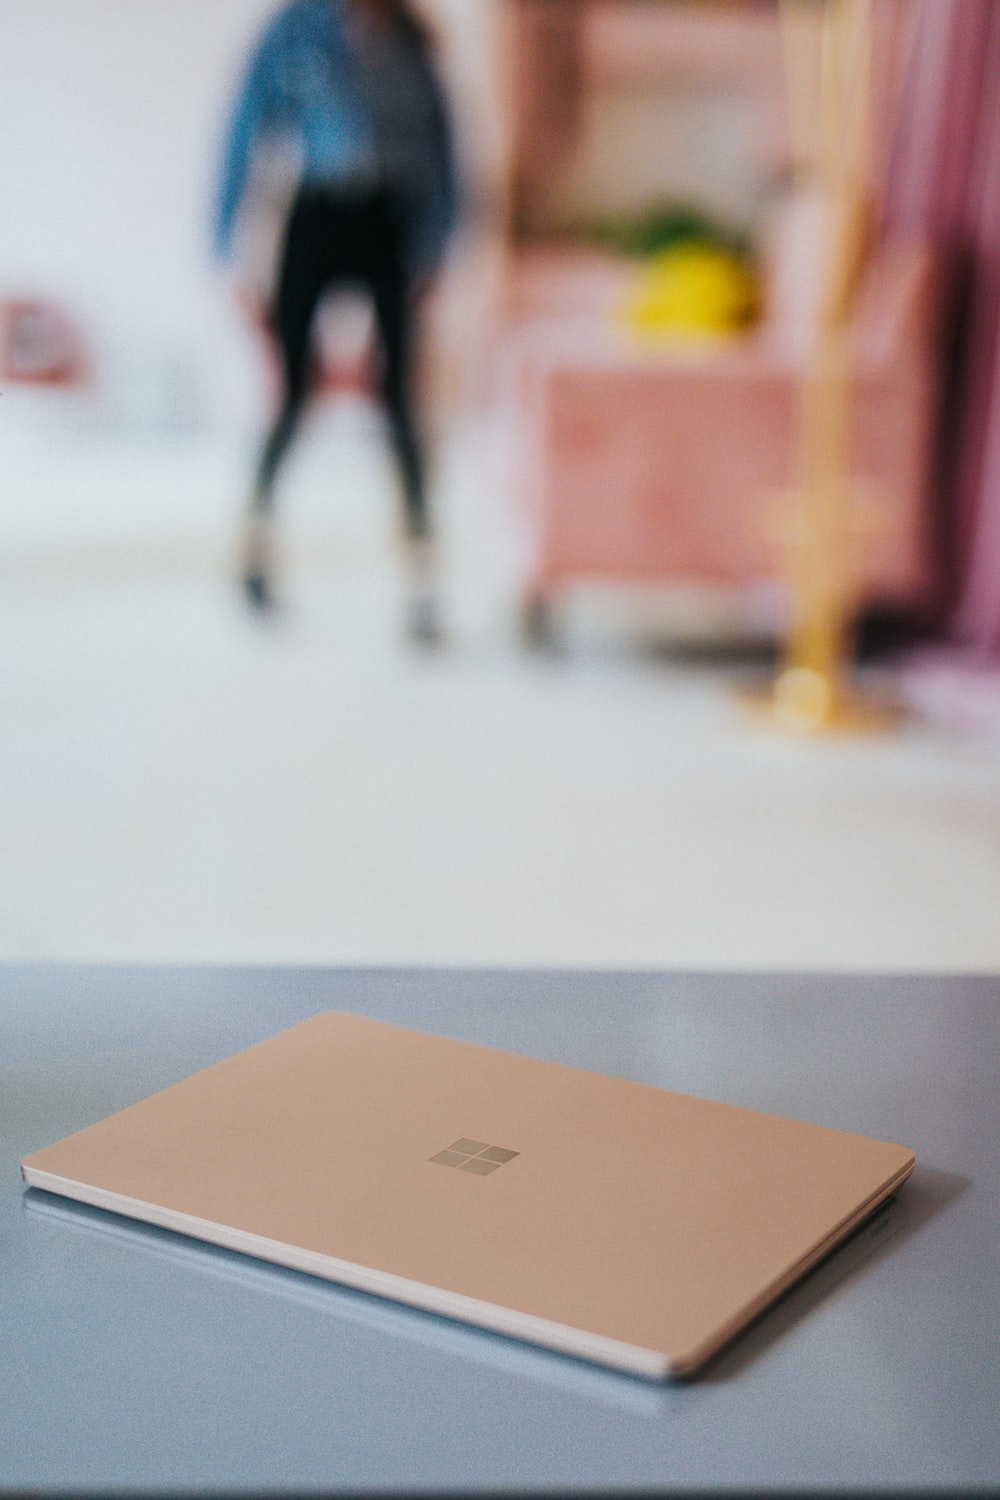 Microsoft Surface laptop on gray table